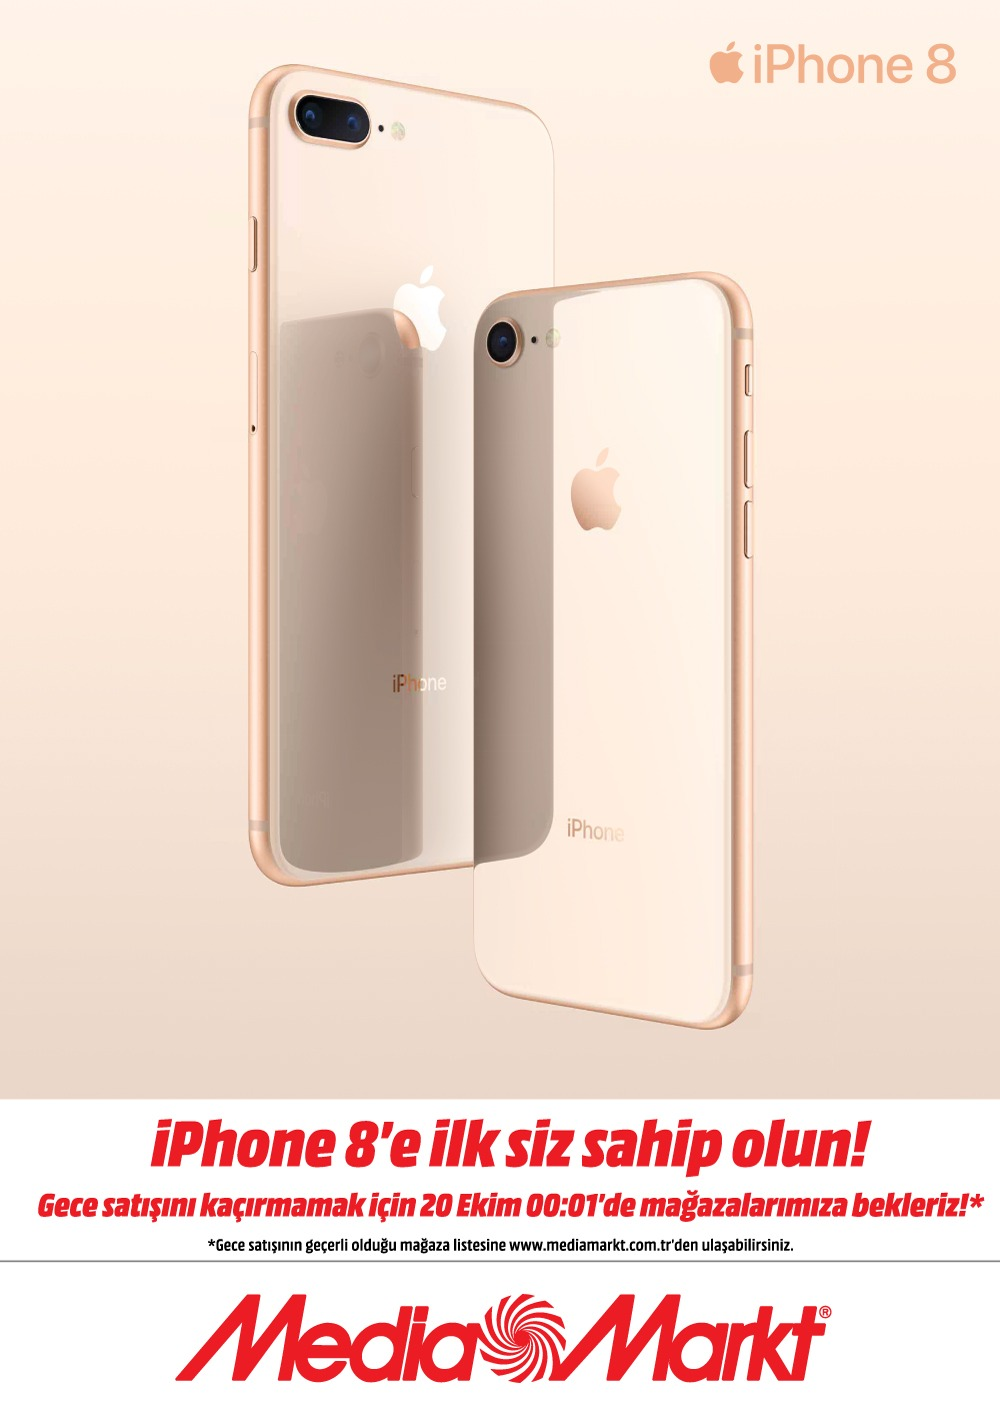 iPhone 8 MediaMarkt